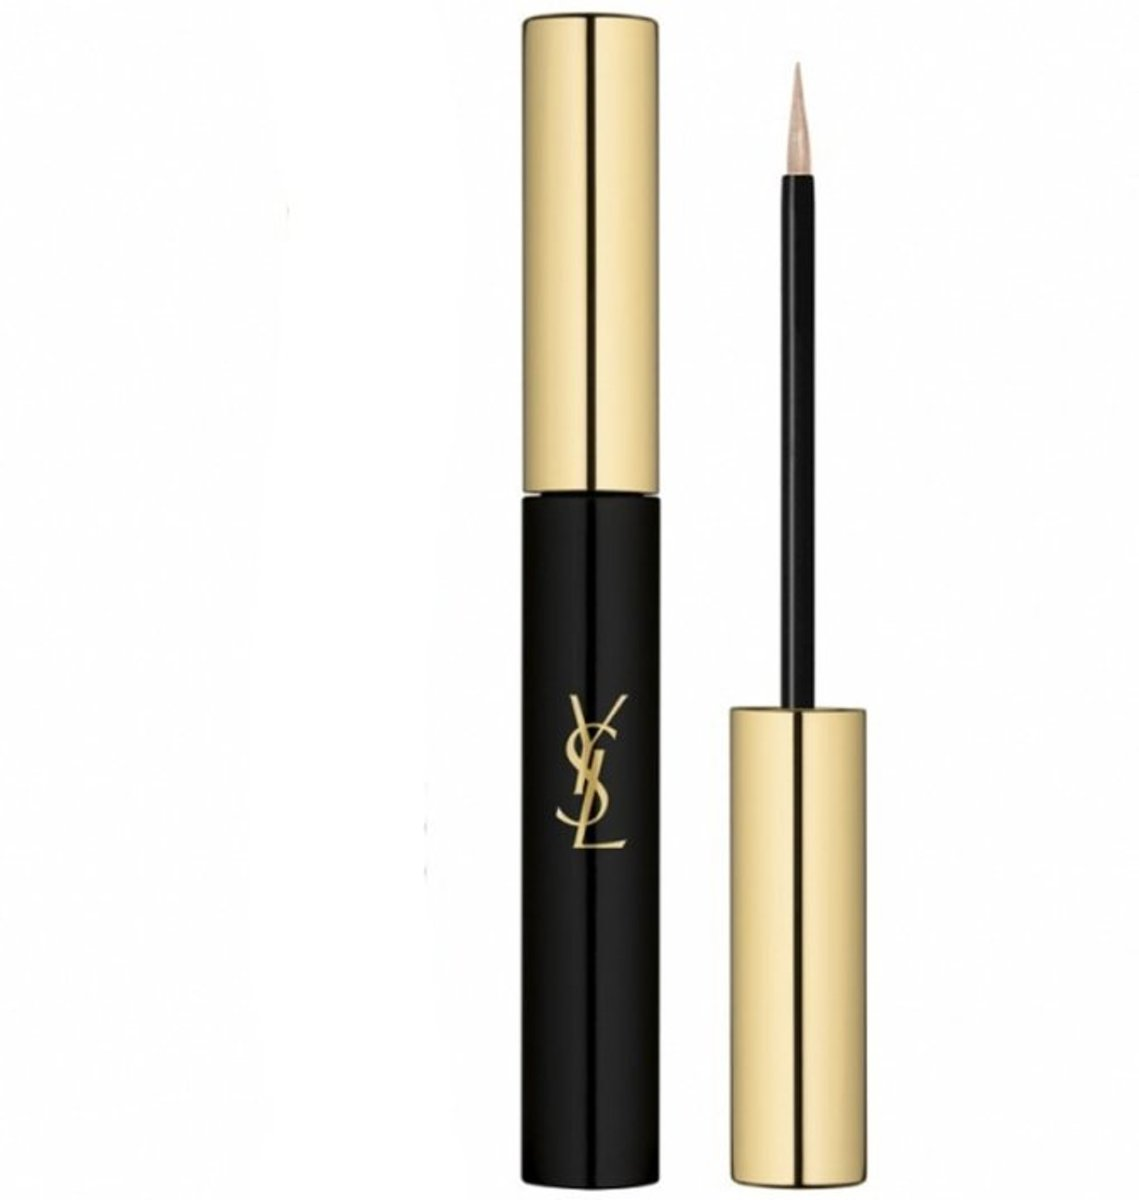 Yves Saint Laurent Couture Eyeliner 3 ml - 4 - Brown Essent